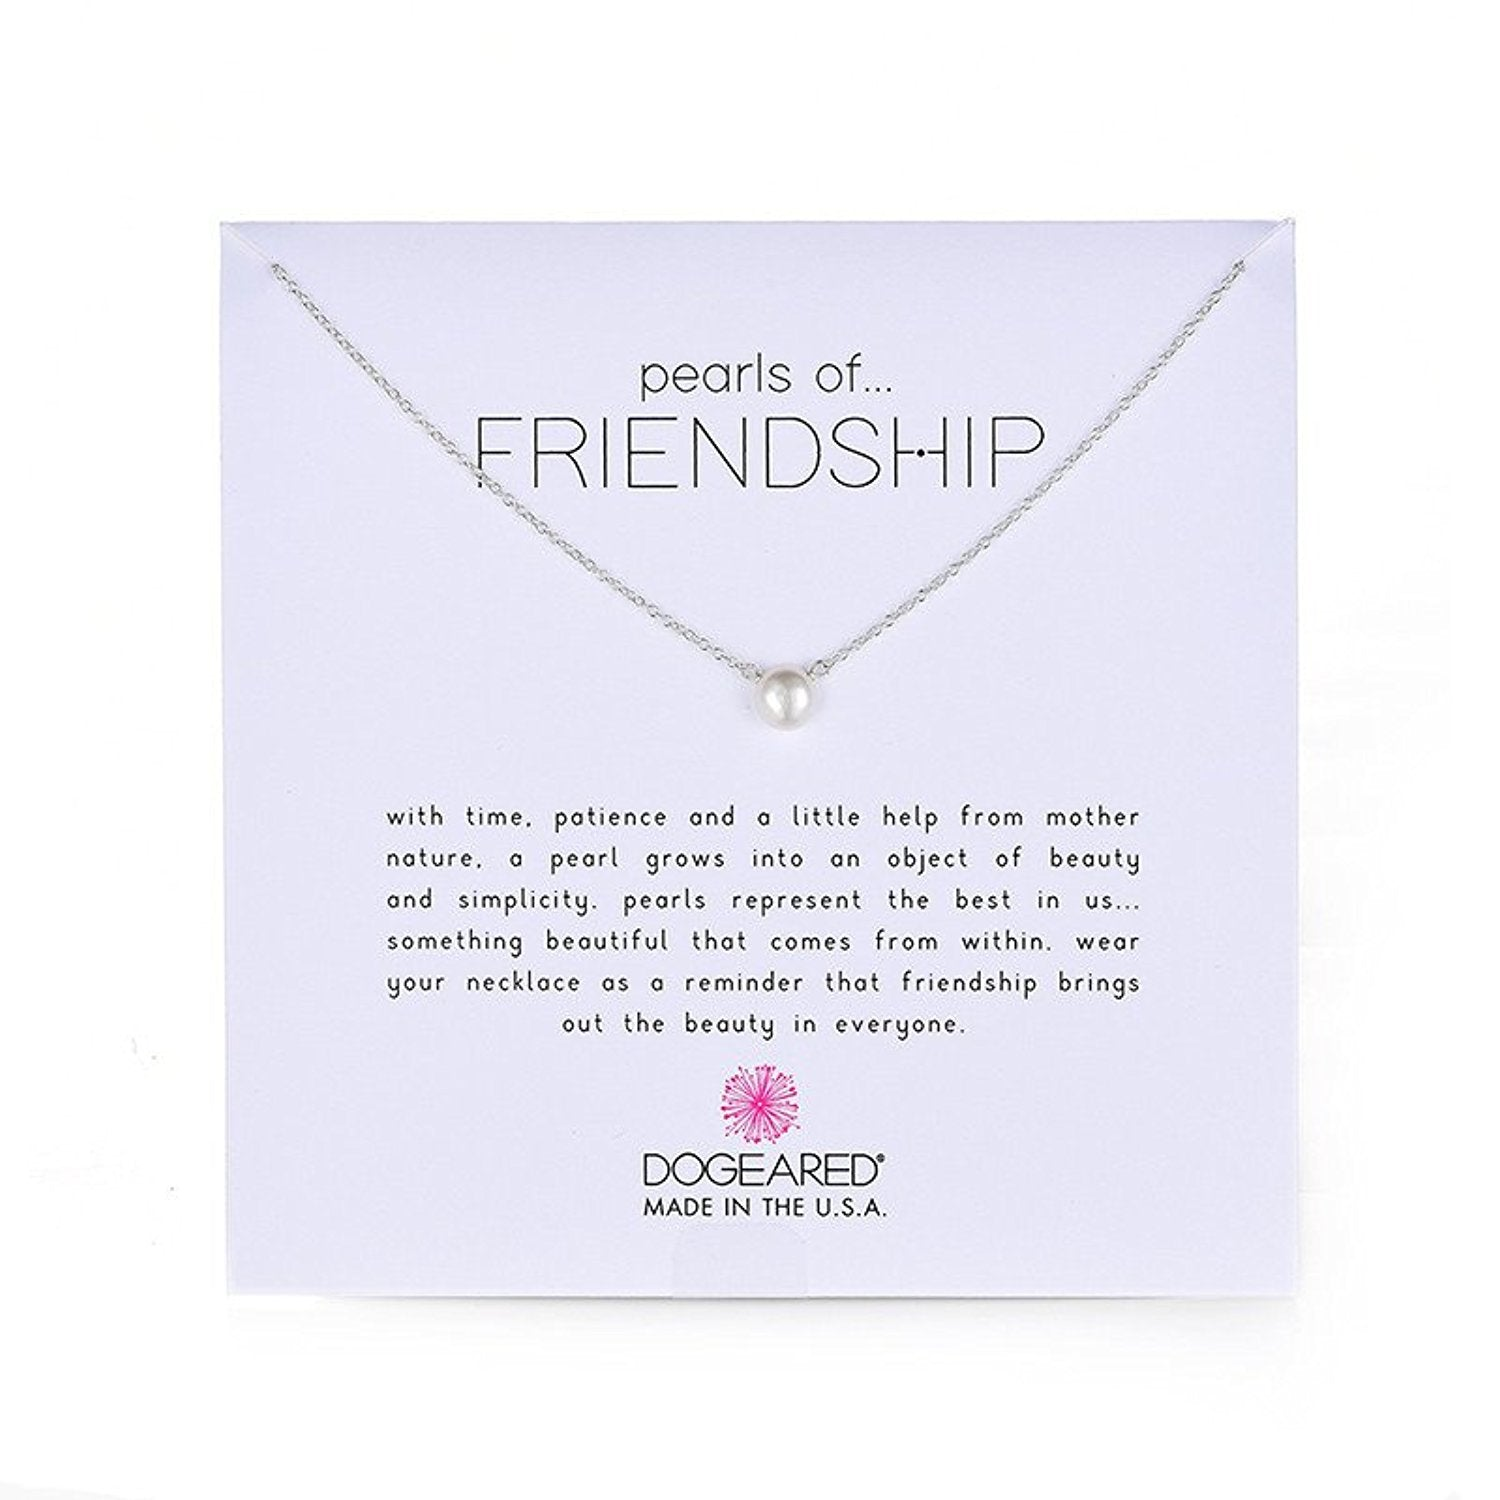 Dogeared Pearls of Friendship Small White Pearl Necklace